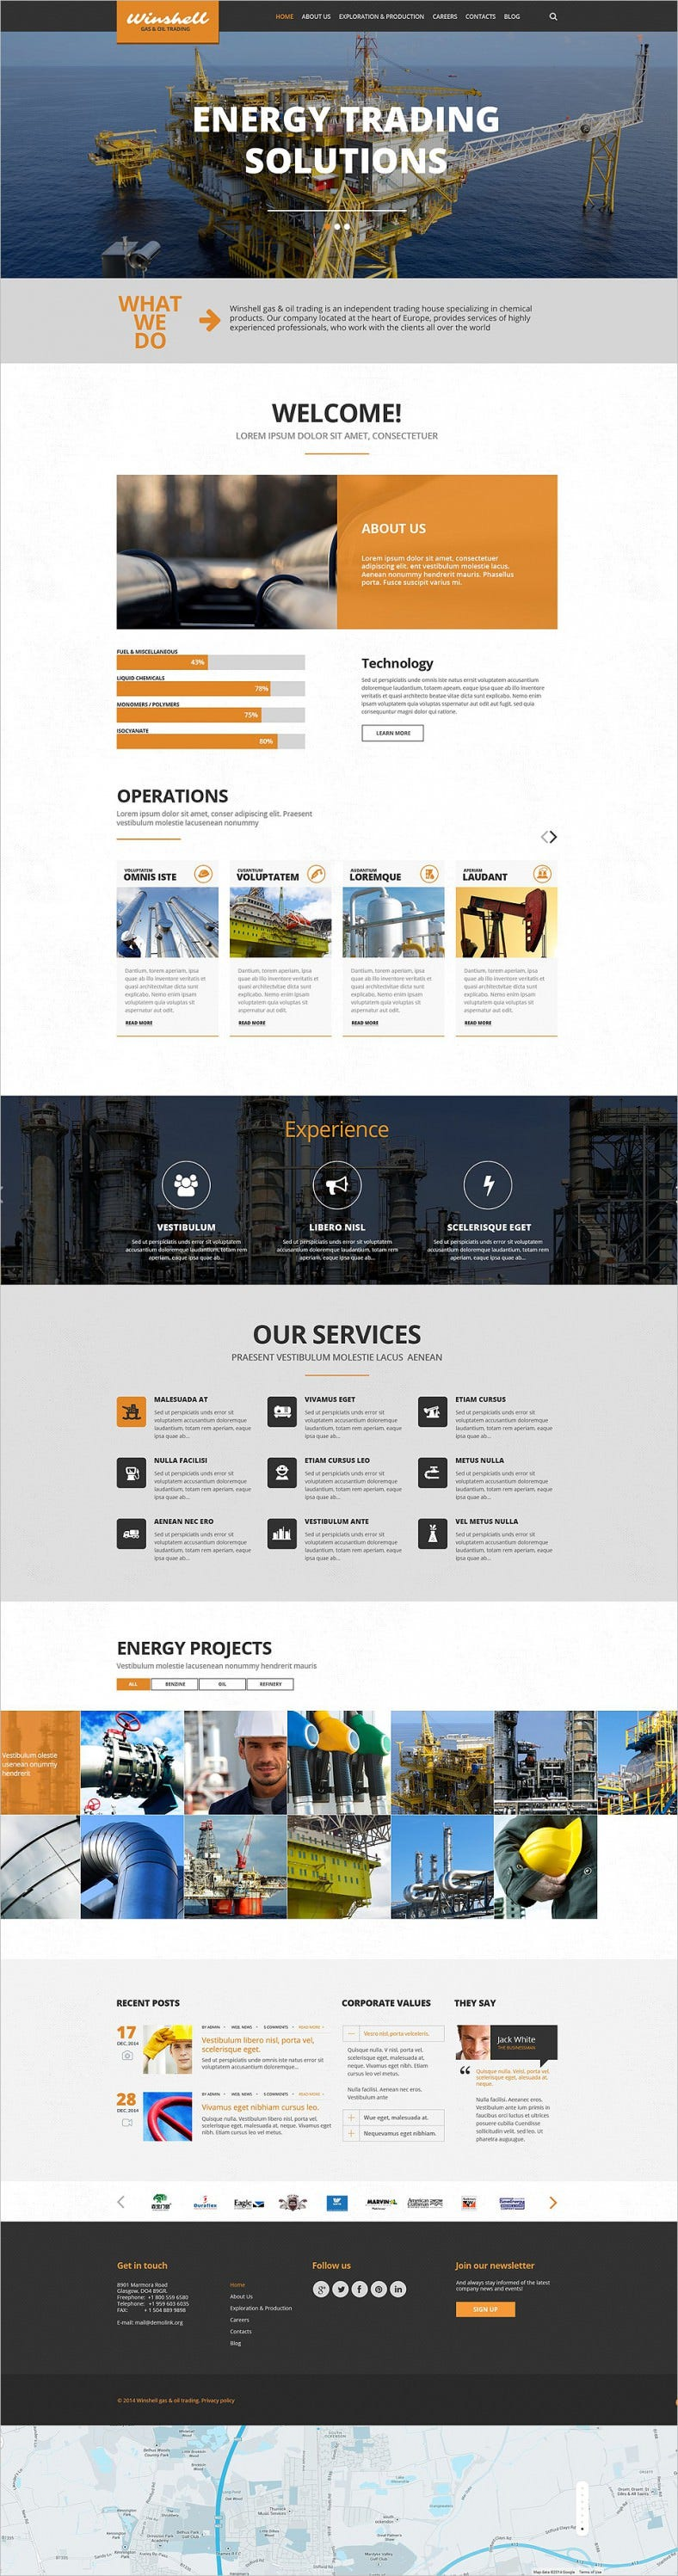 Oil & Gas Company WordPress Website Templates & Themes | Free ...